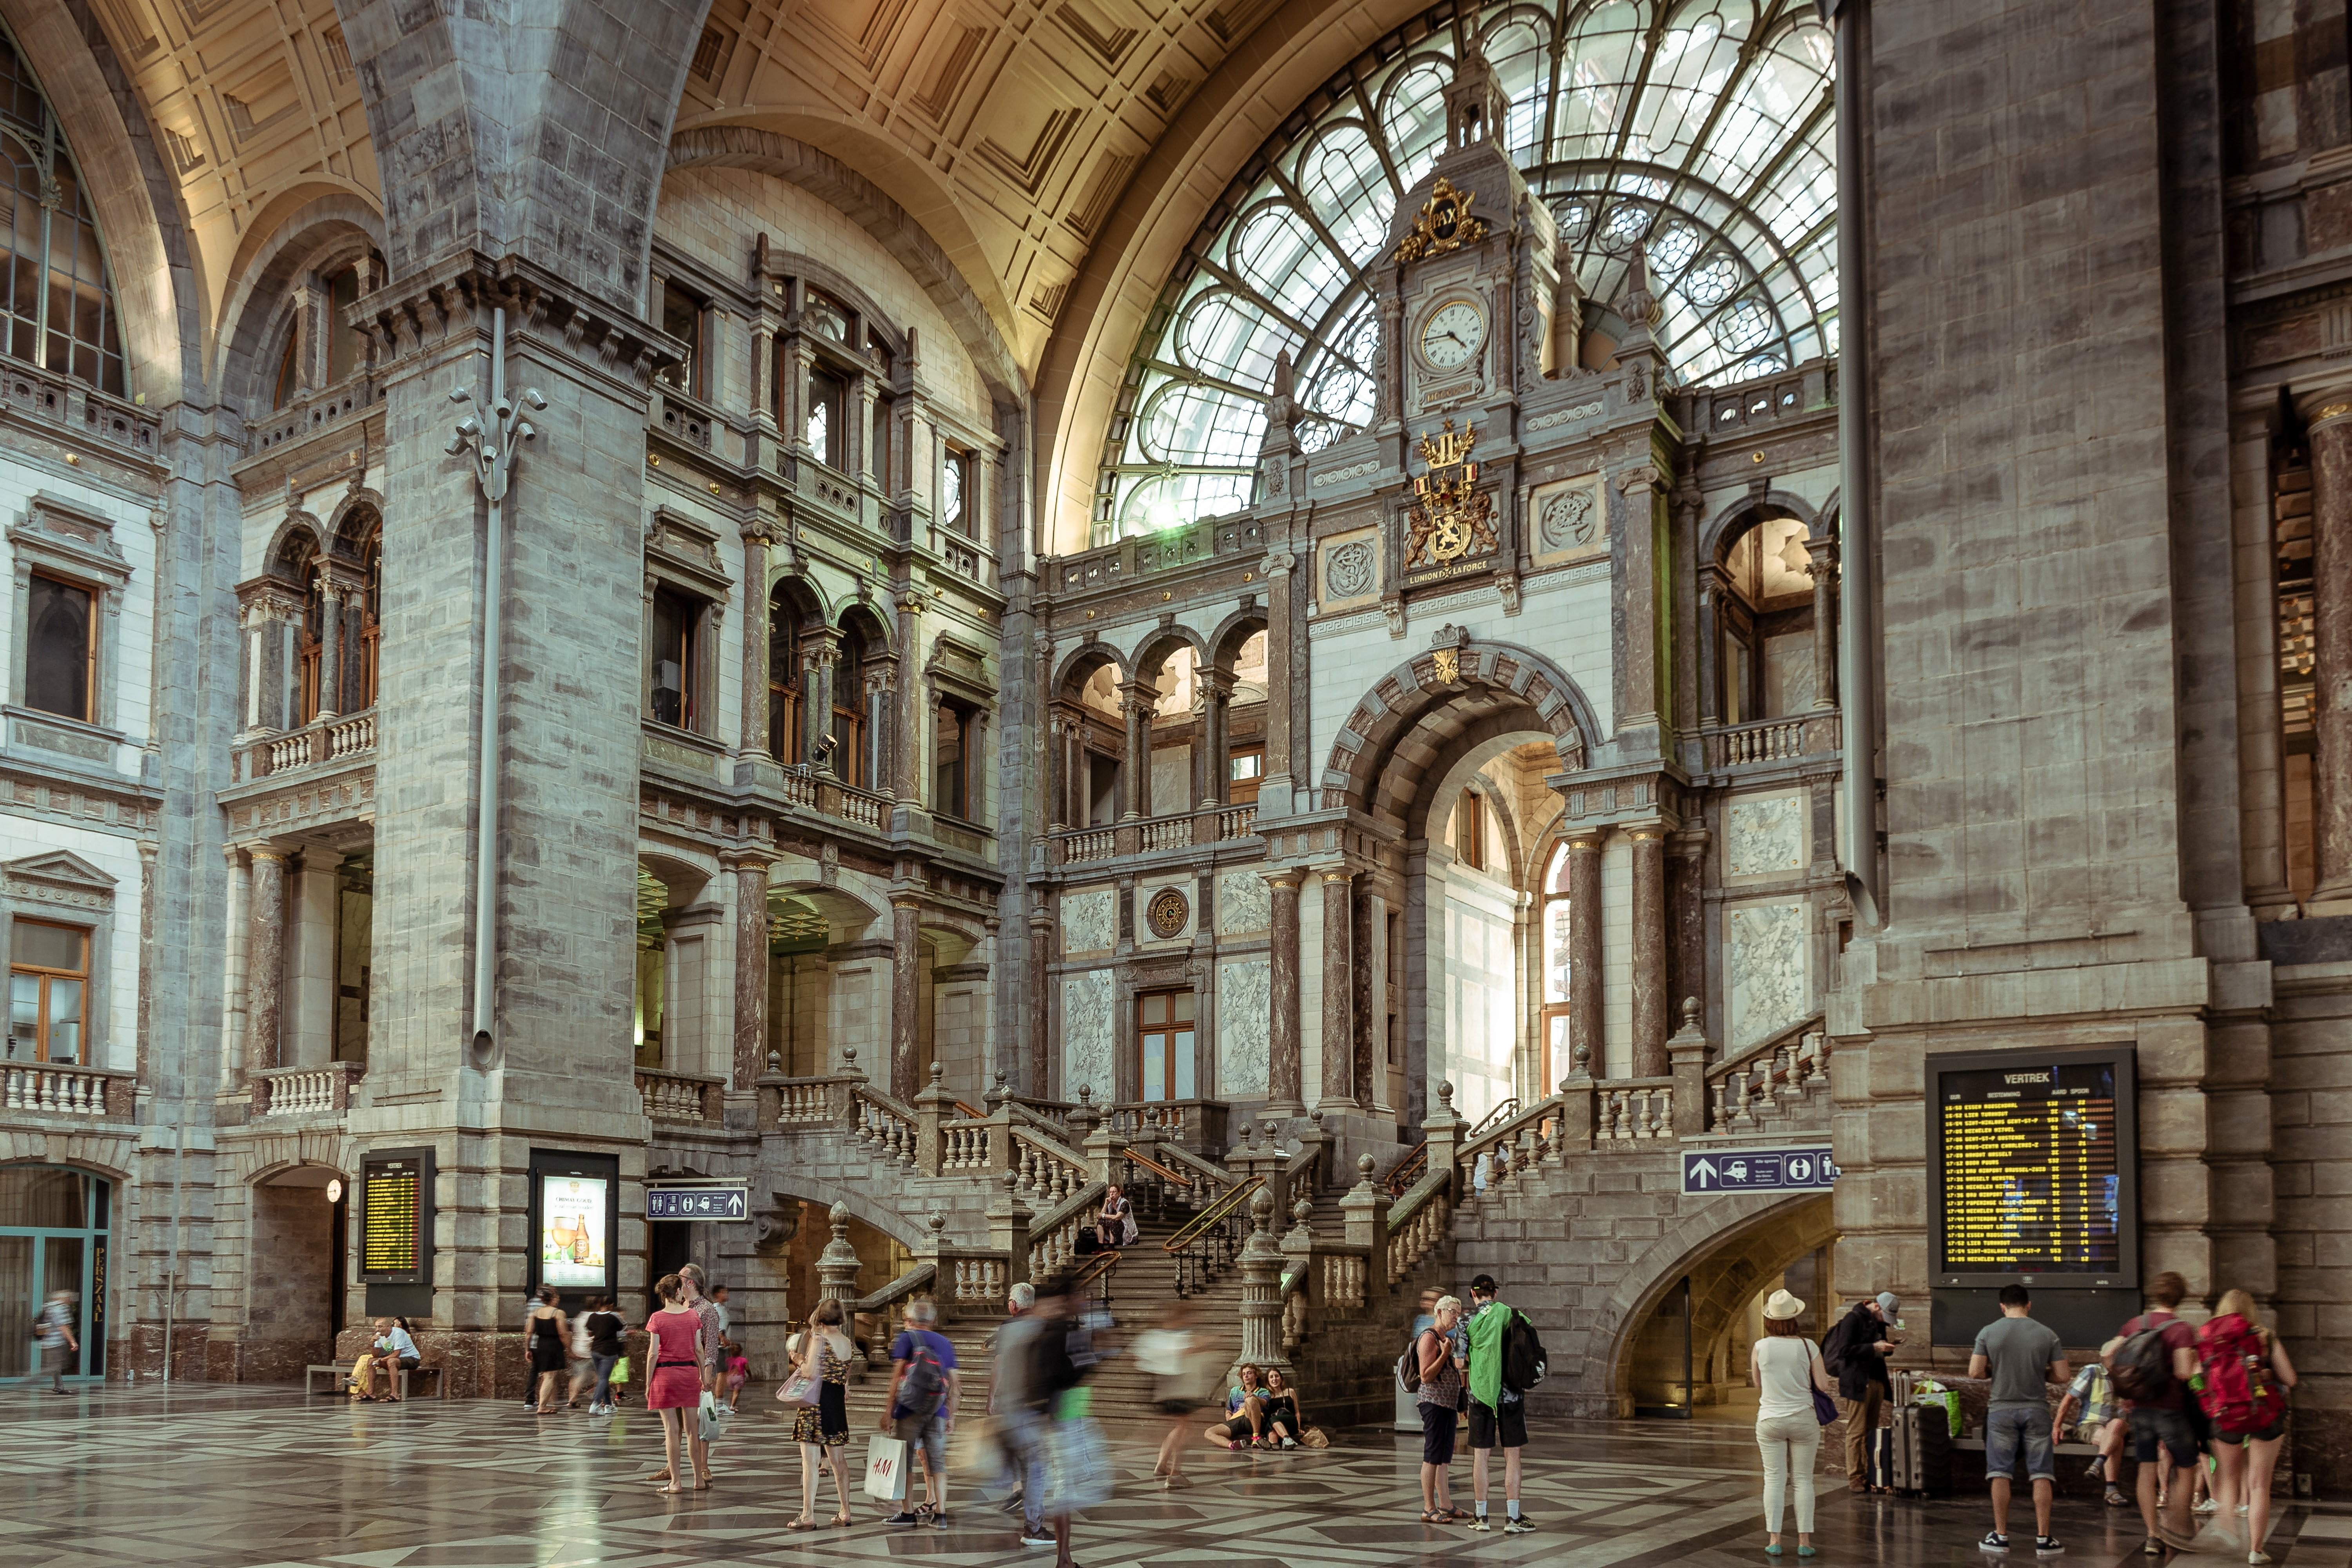 The Most Beautiful Train Stations in the World: Antwerp's magnificent station